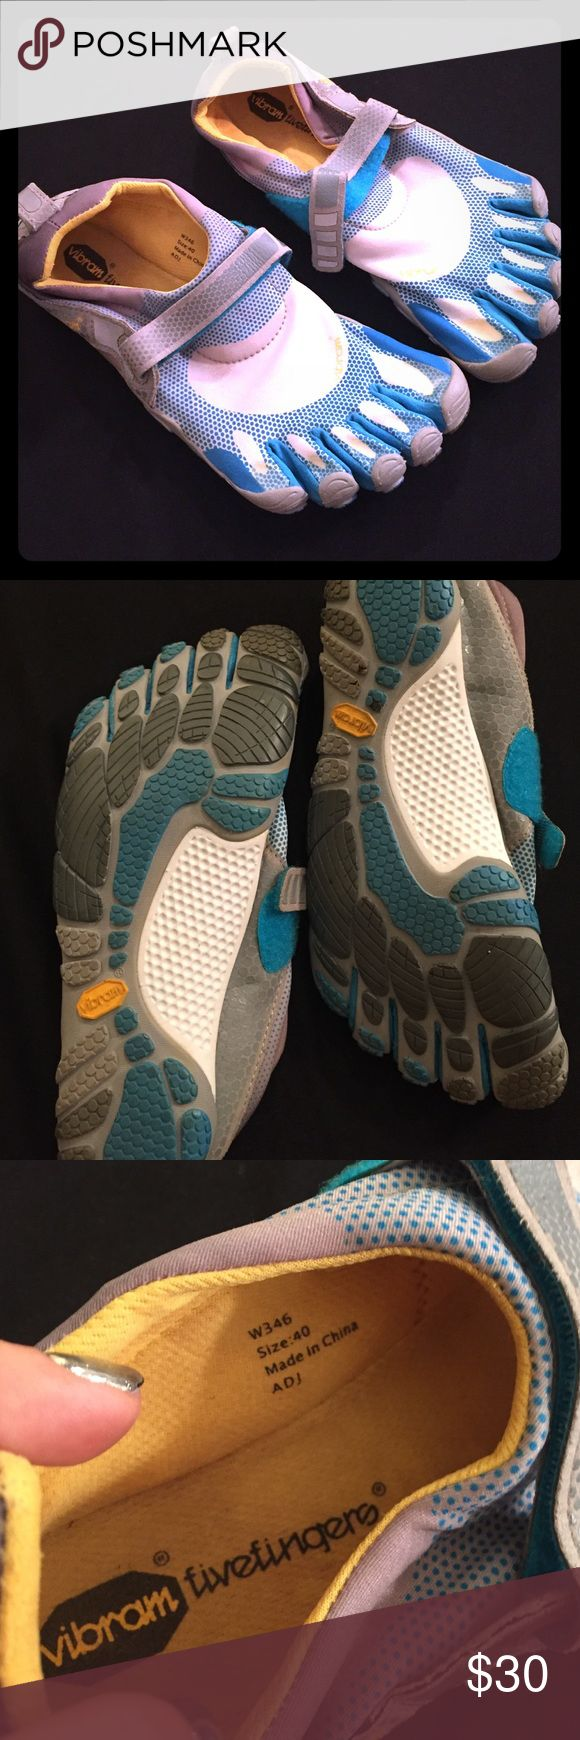 Vibram Five Fingers women running shoe sneaker 8.5 Vibram Five Fingers women running shoe sneaker fits size 8 to 8.5. Excellent condition used once or twice. Authentic purchased from city sports. Machine wash warm. MAKE AN OFFER or bundle to save!! Xo RAPJAXX Los Angeles Vibram Shoes Athletic Shoes